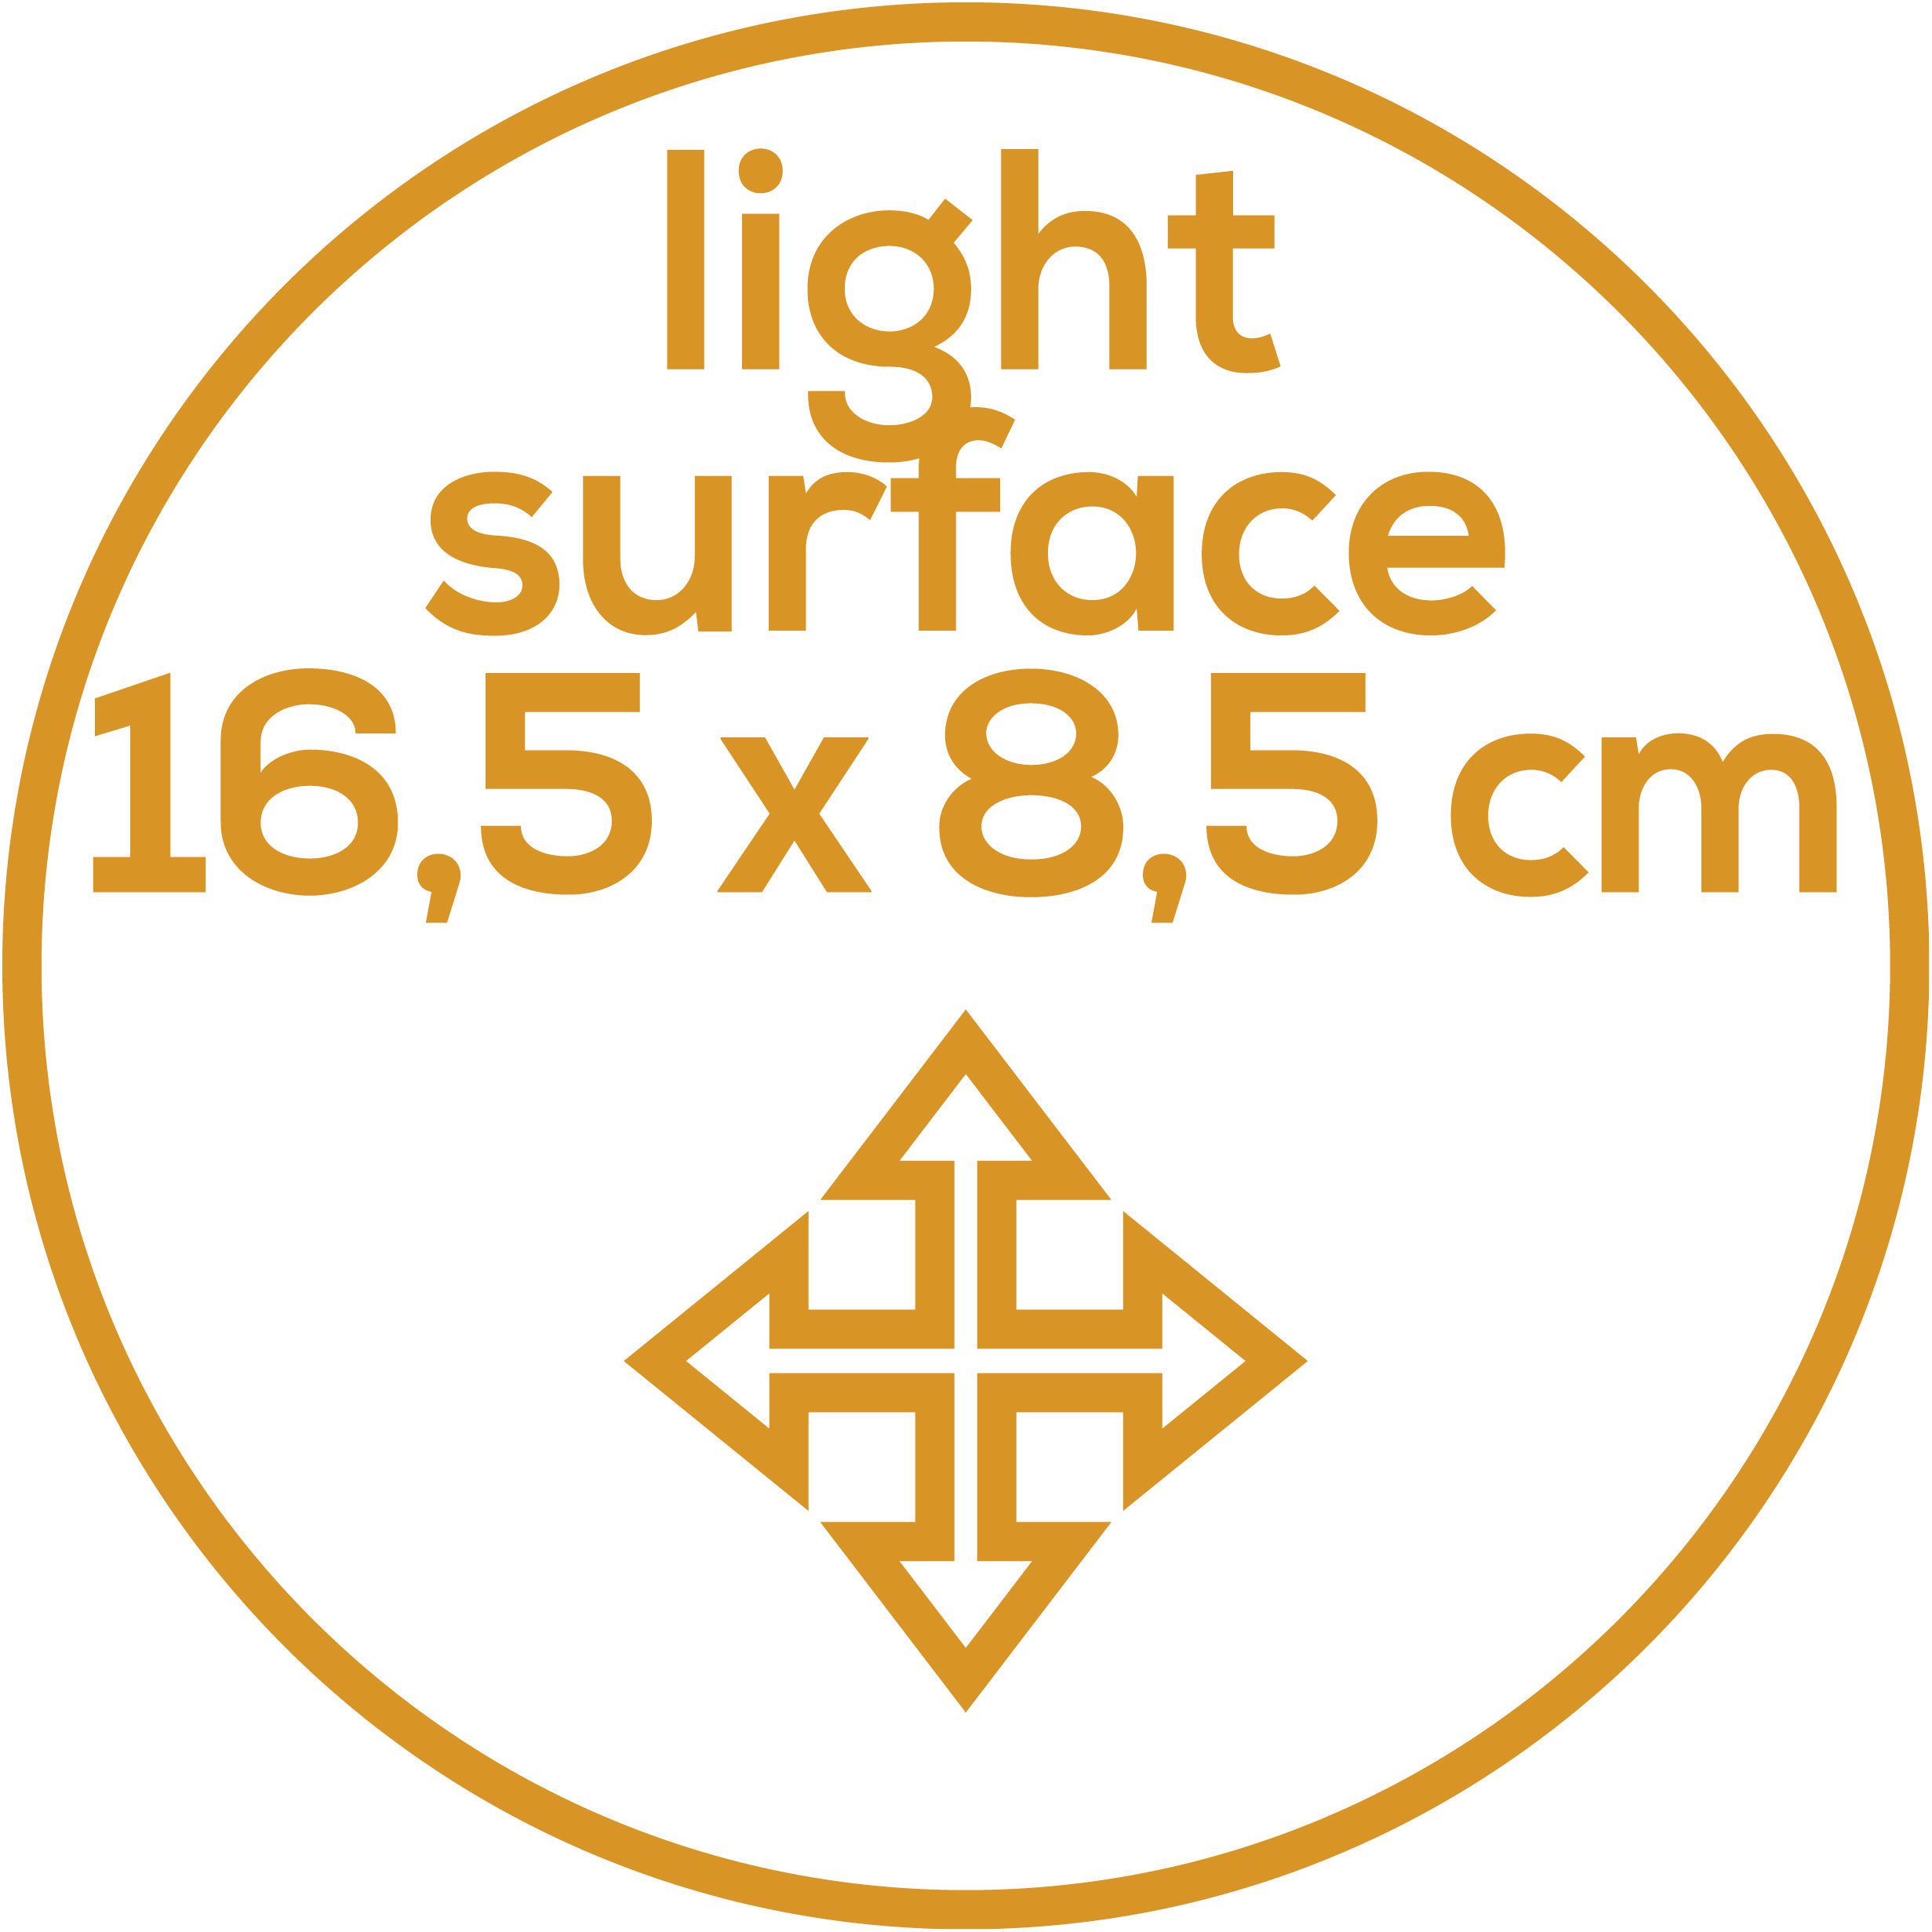 Illumination surface 16.5 x 8.5 cm